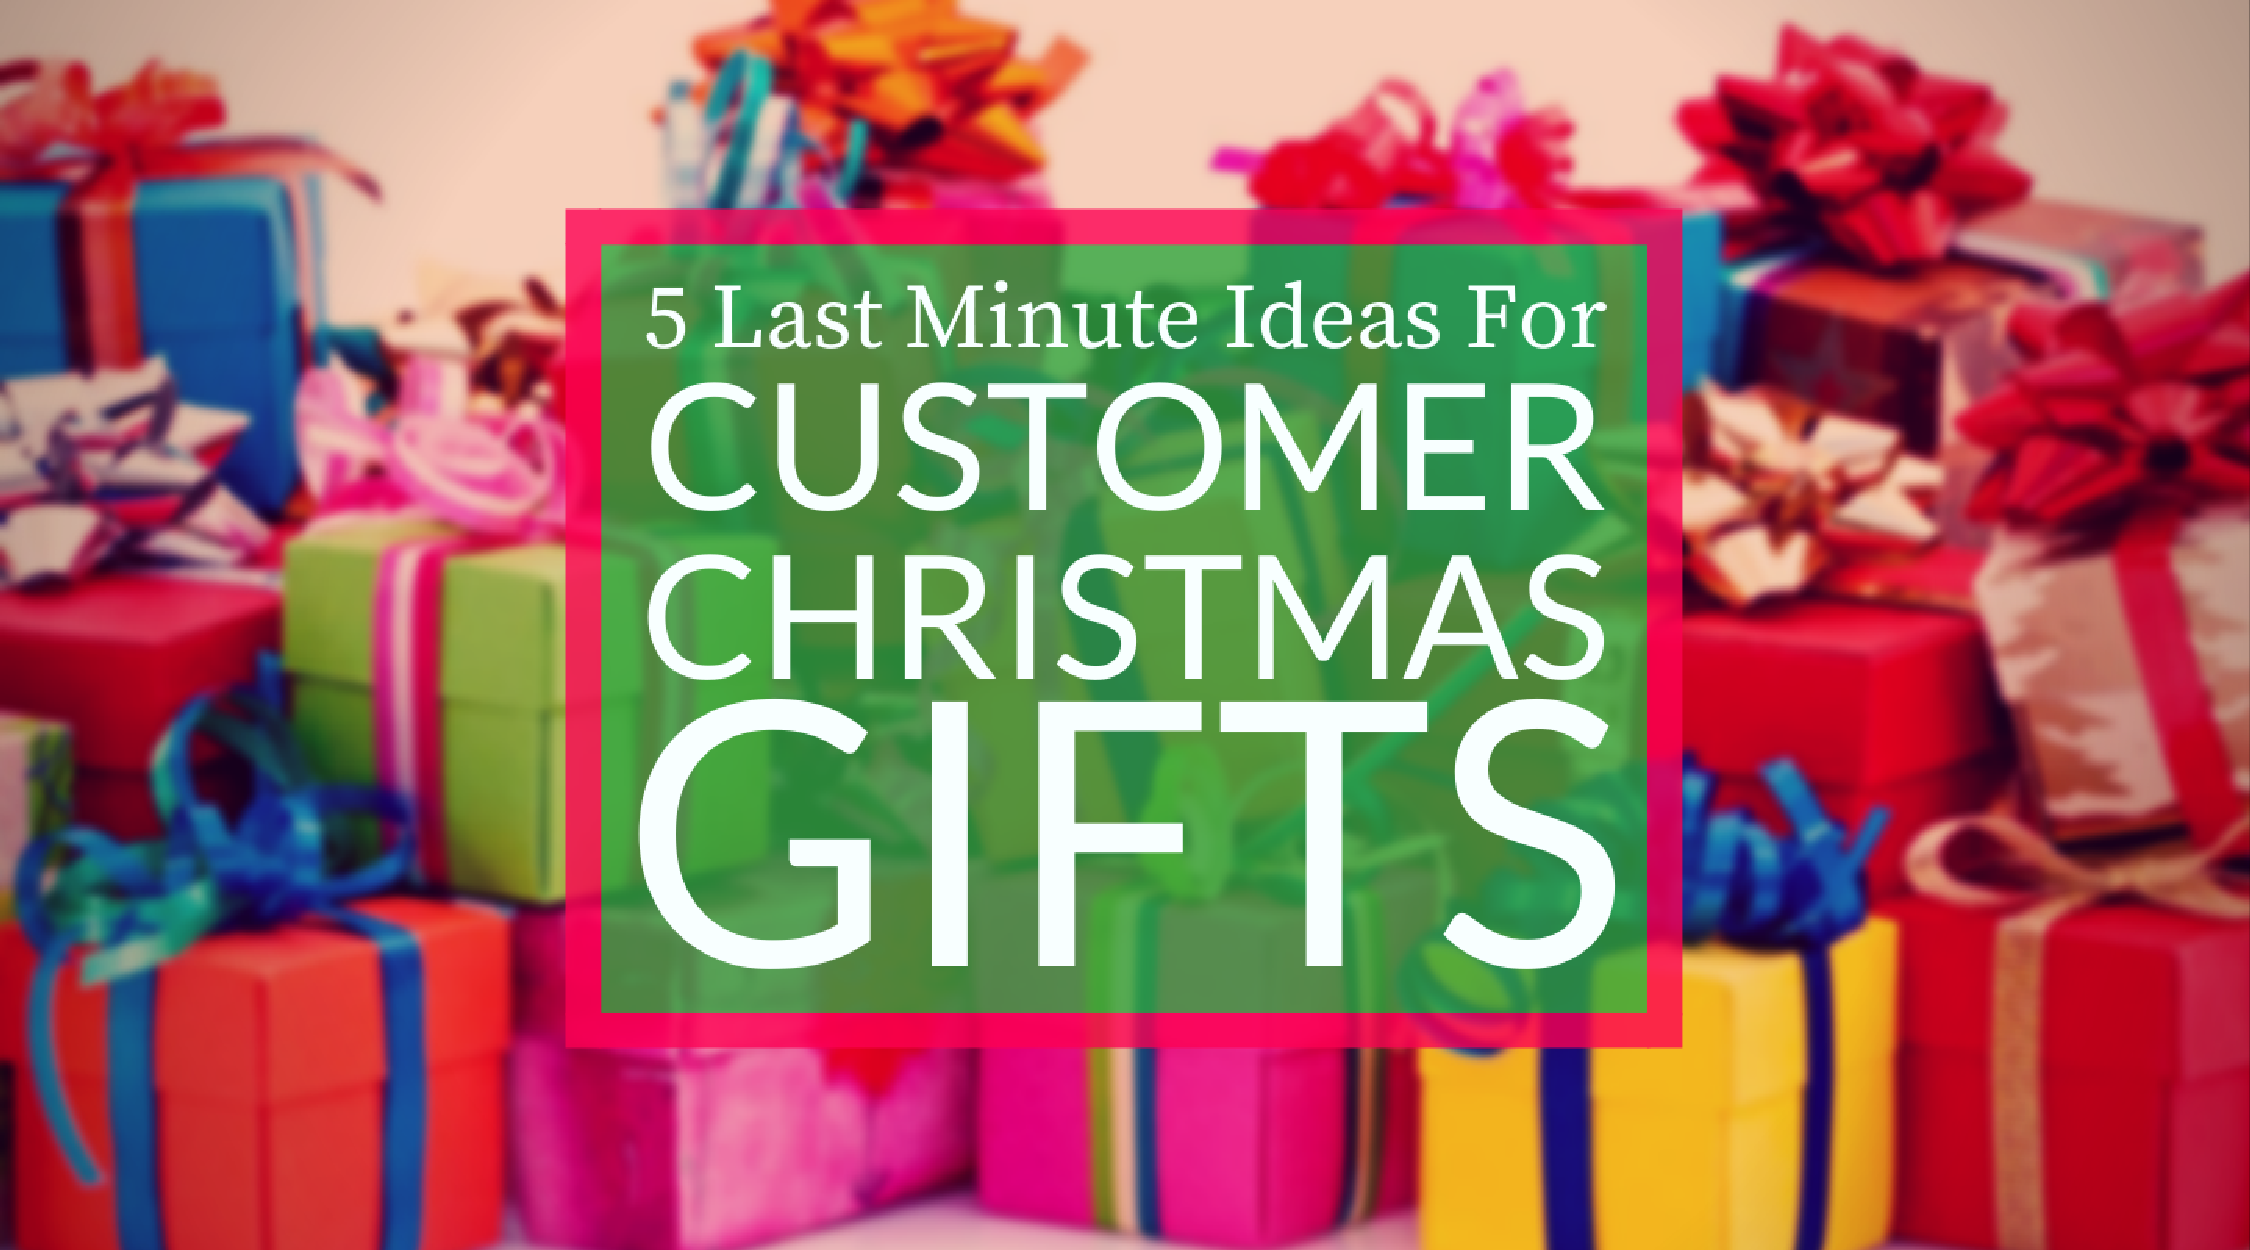 5 Last Minute Ideas for Customer Christmas Gifts  sc 1 st  Dothethings & Customer Gifts for Christmas - 5 Last Minute Ideas